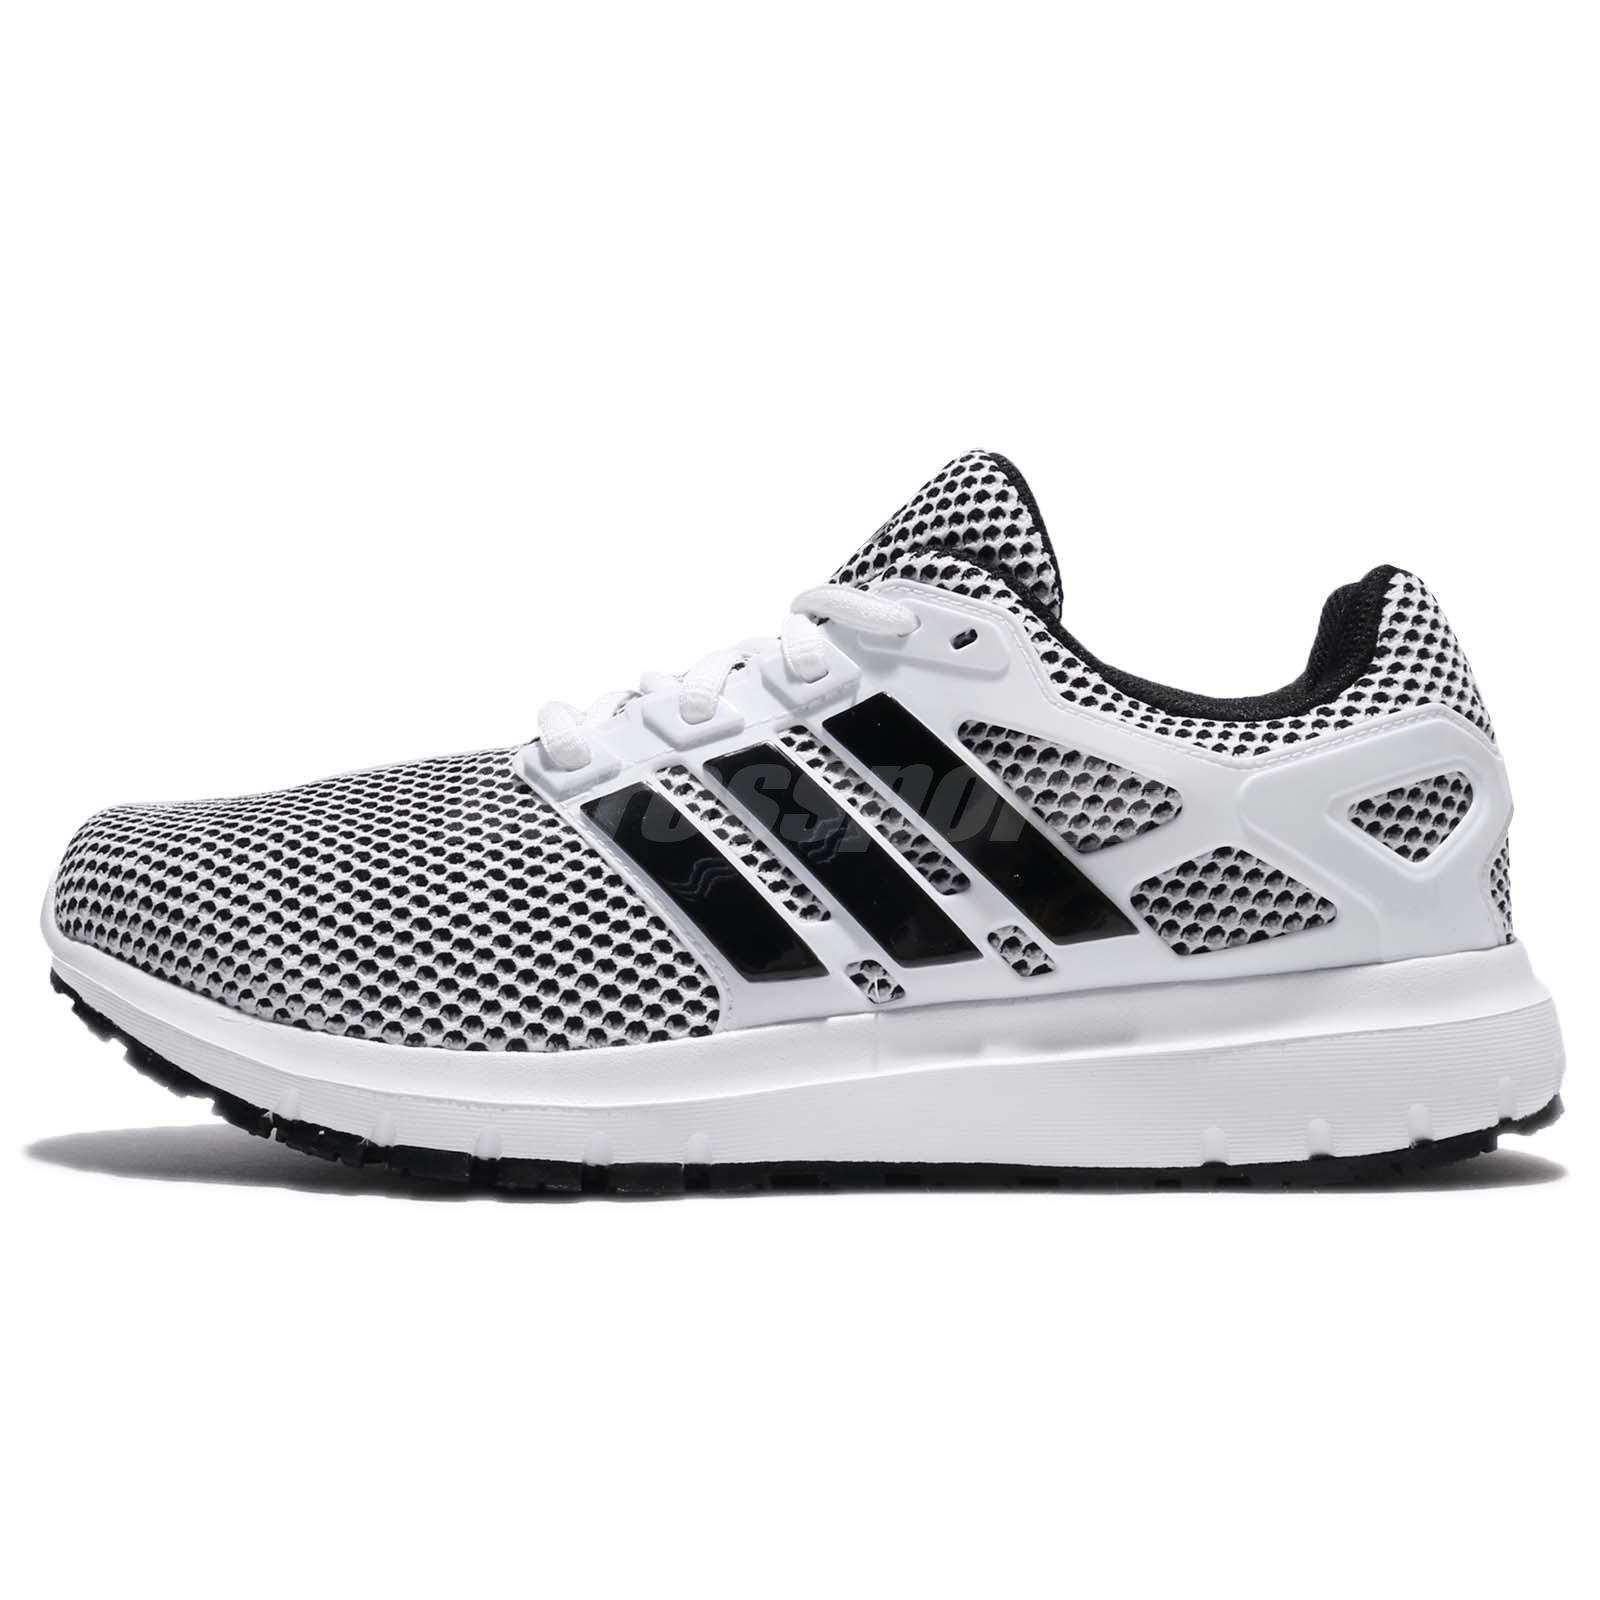 new arrivals cc59f a316f adidas Energy Cloud M Cloudfoam White Black Men Running Shoes Sneakers  CG3007